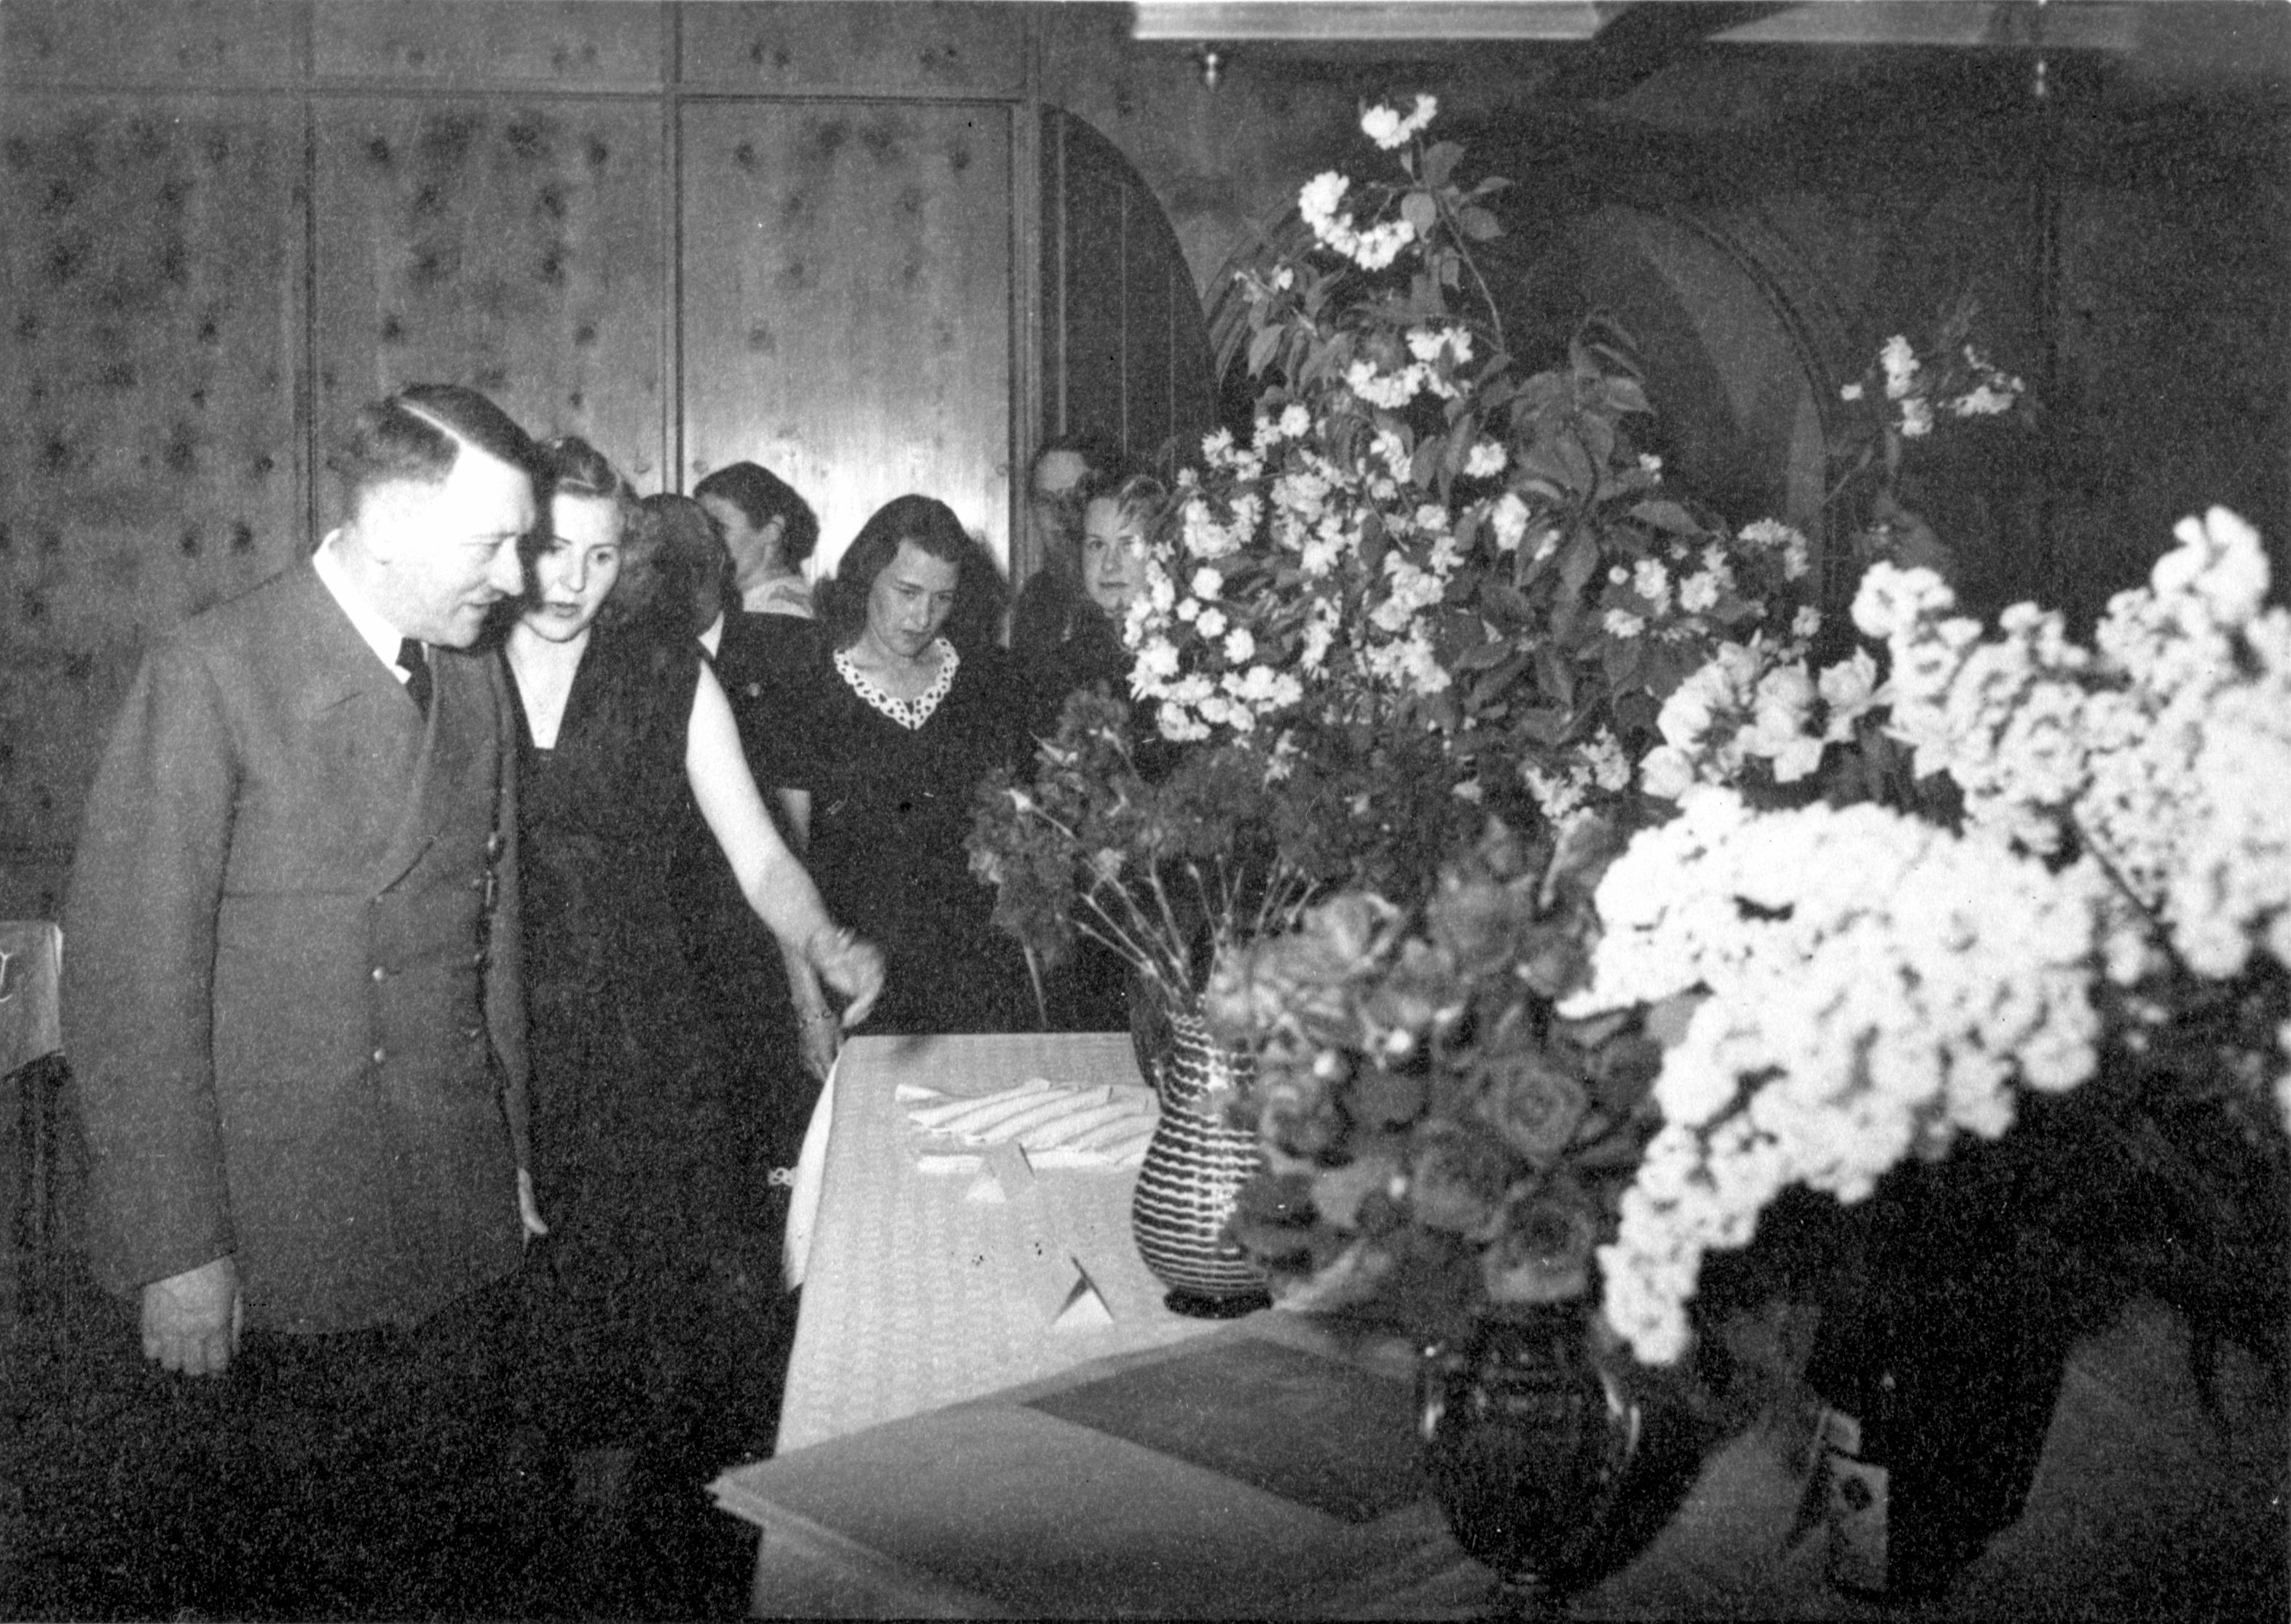 Adolf Hitler and Eva Braun look at the gifts on the occasion of the 54th birthday of the Führer, from Eva Braun's albums